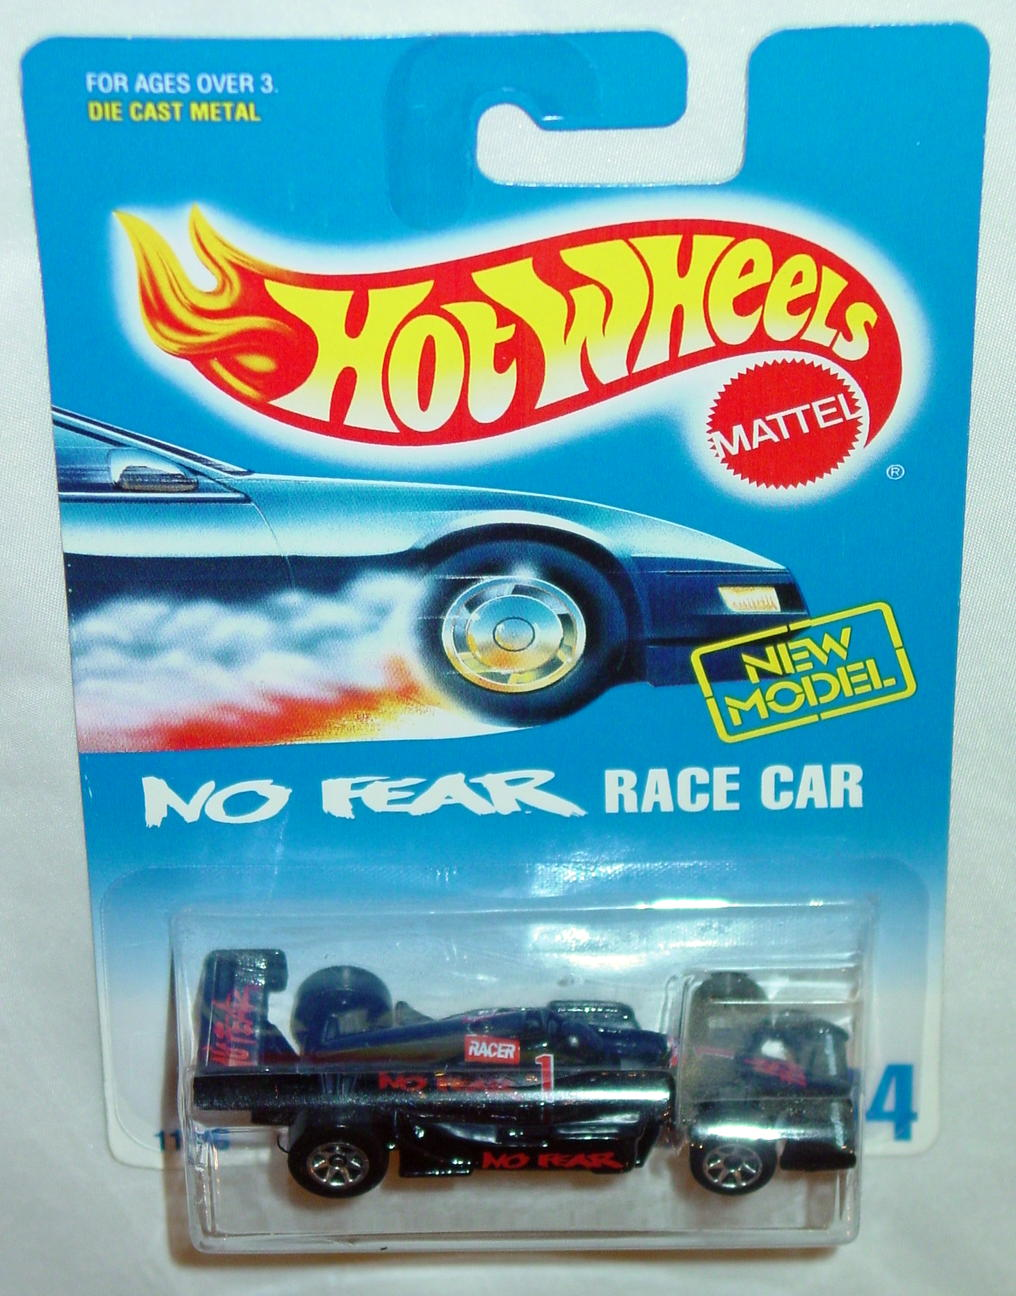 Blackwalls 11846 - 244 No Fear Racer Black SP7 NEW MODEL